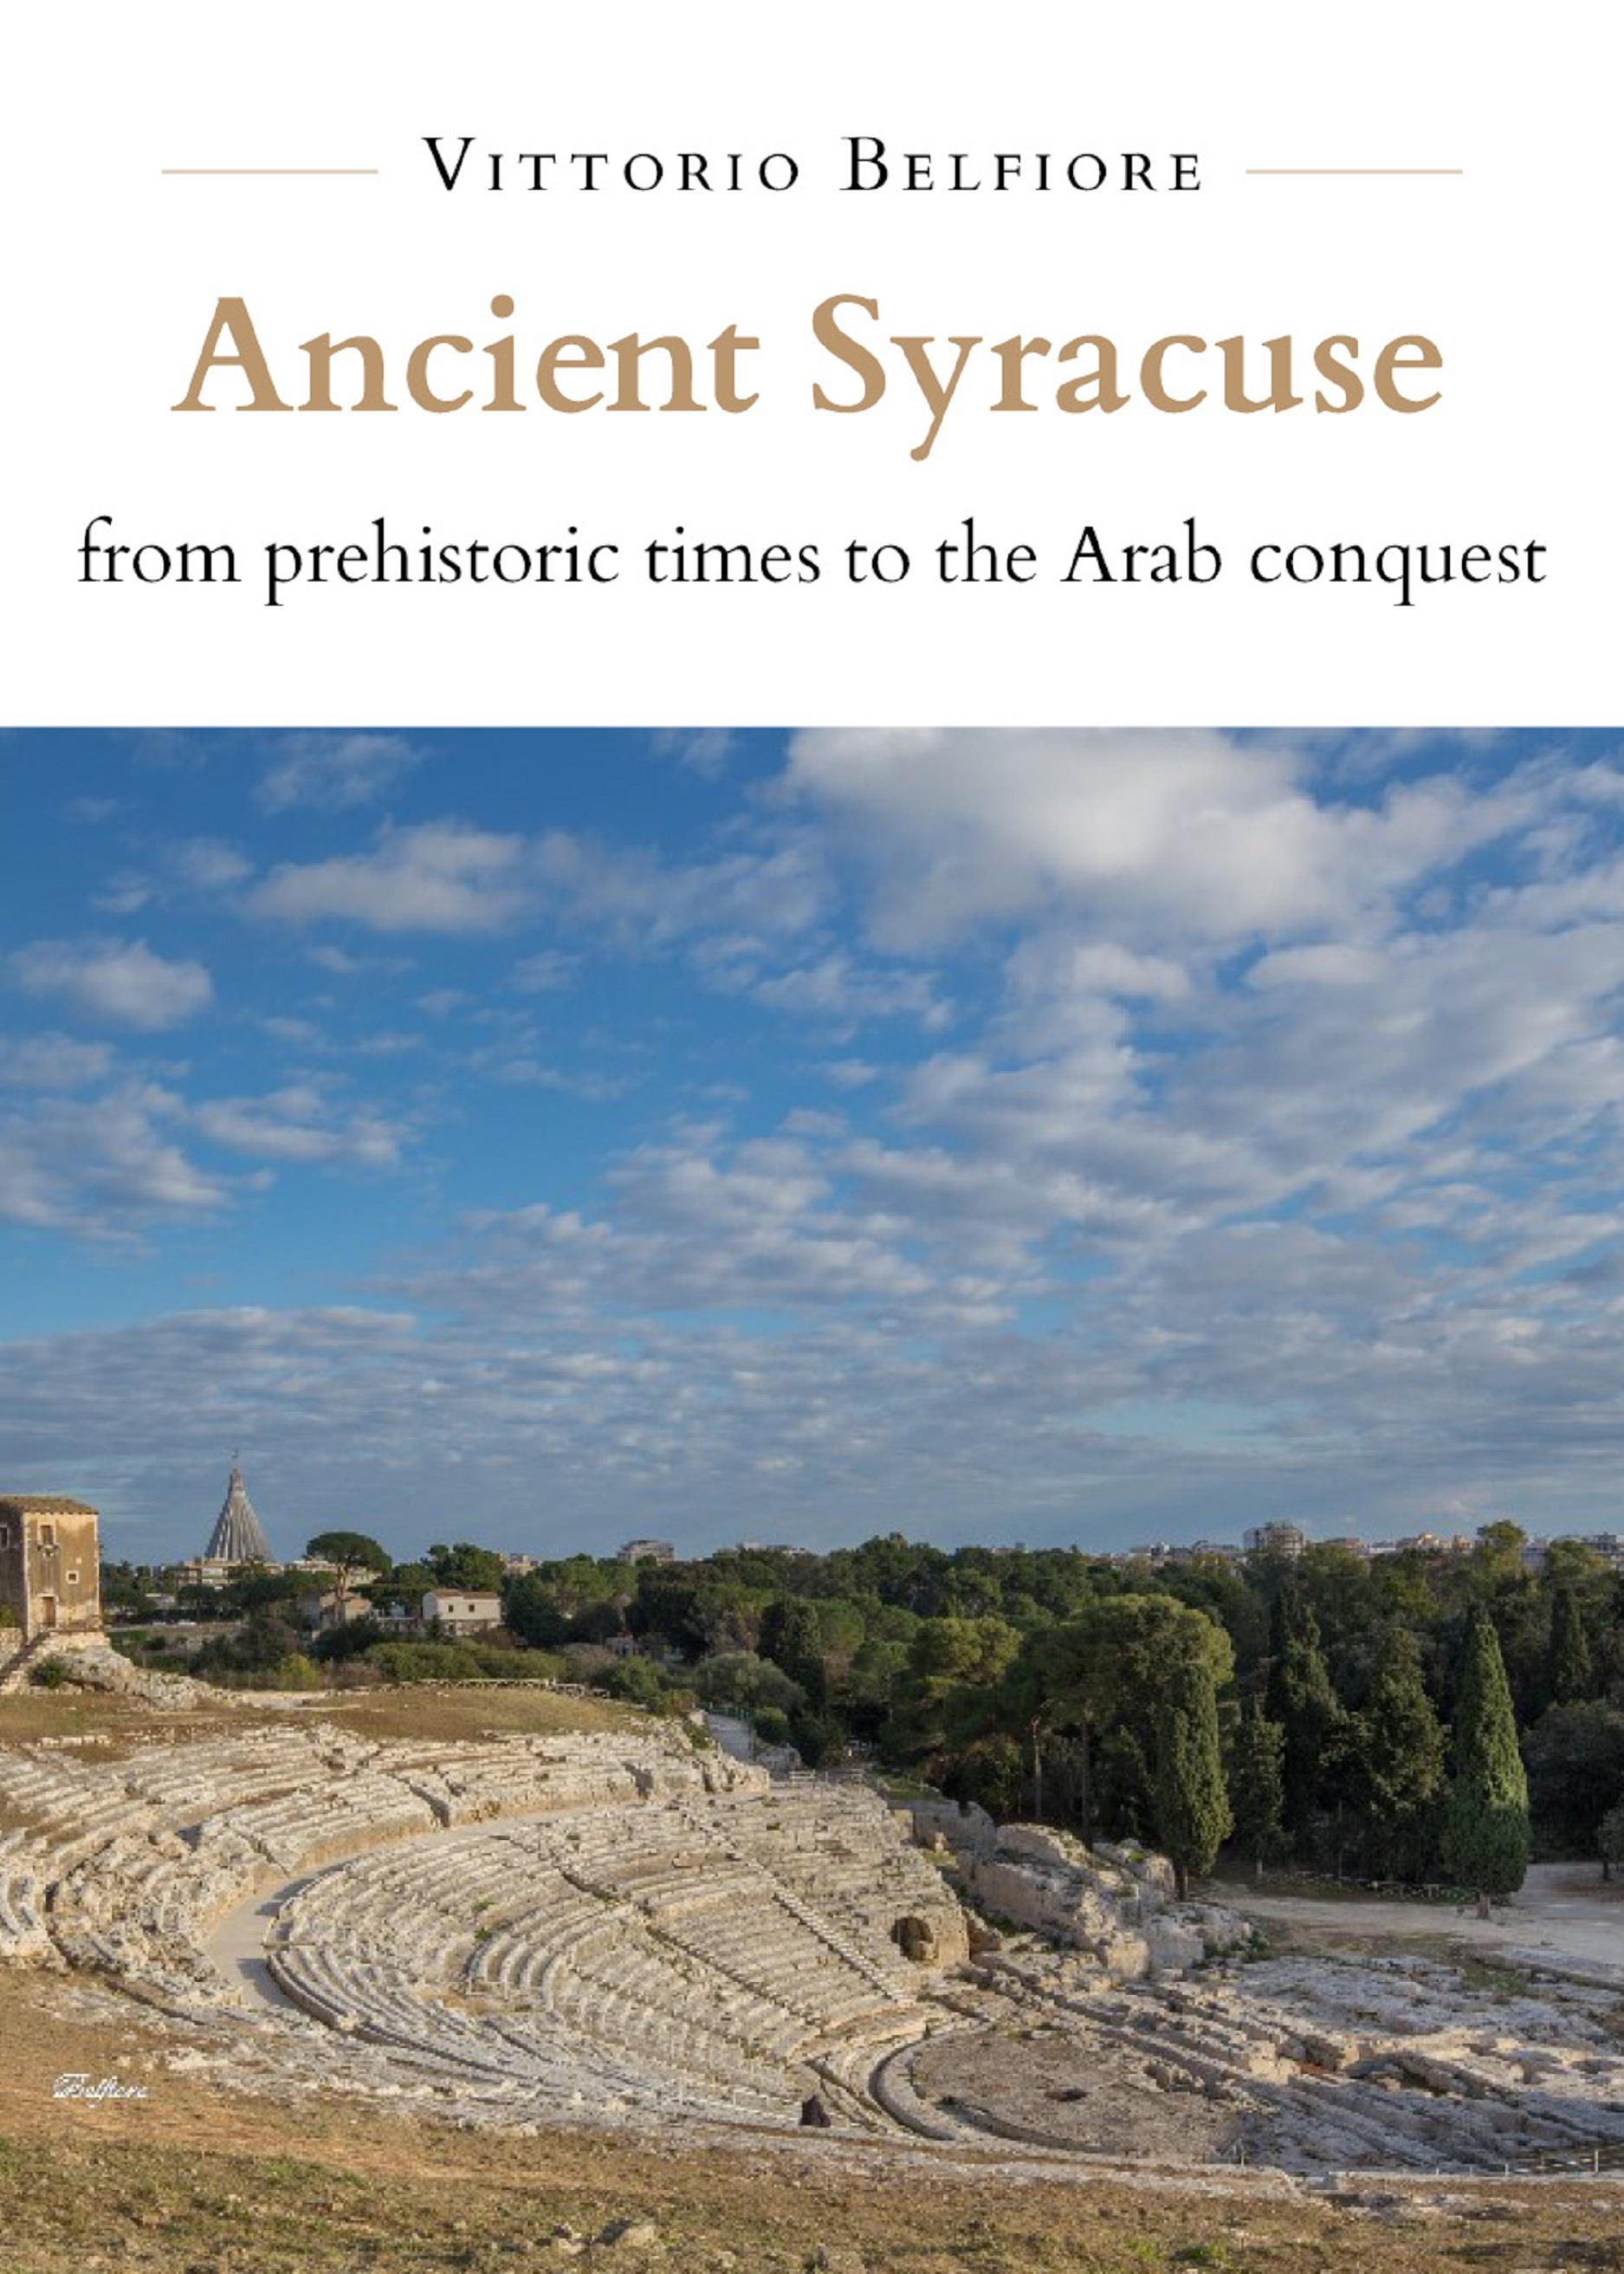 Ancient Syracuse from prehistoric times to the Arab conquest